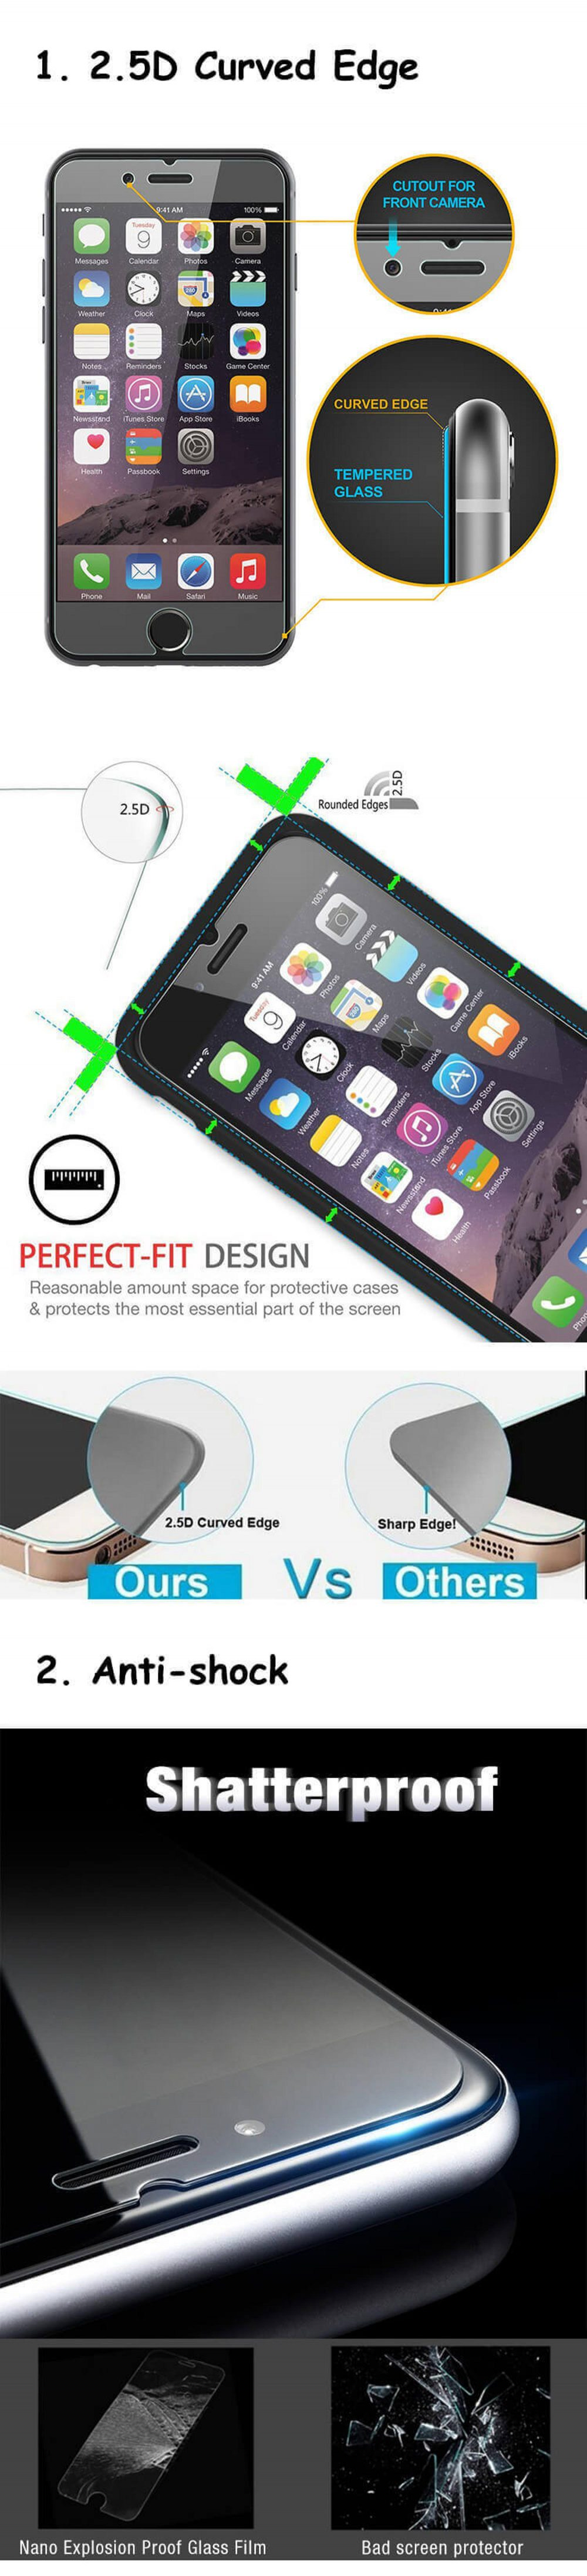 Vivo V11 Pro Tempered Glass Screen Protector Scratch Resistant | Full Edge  To Edge Cover | From Manufacturer